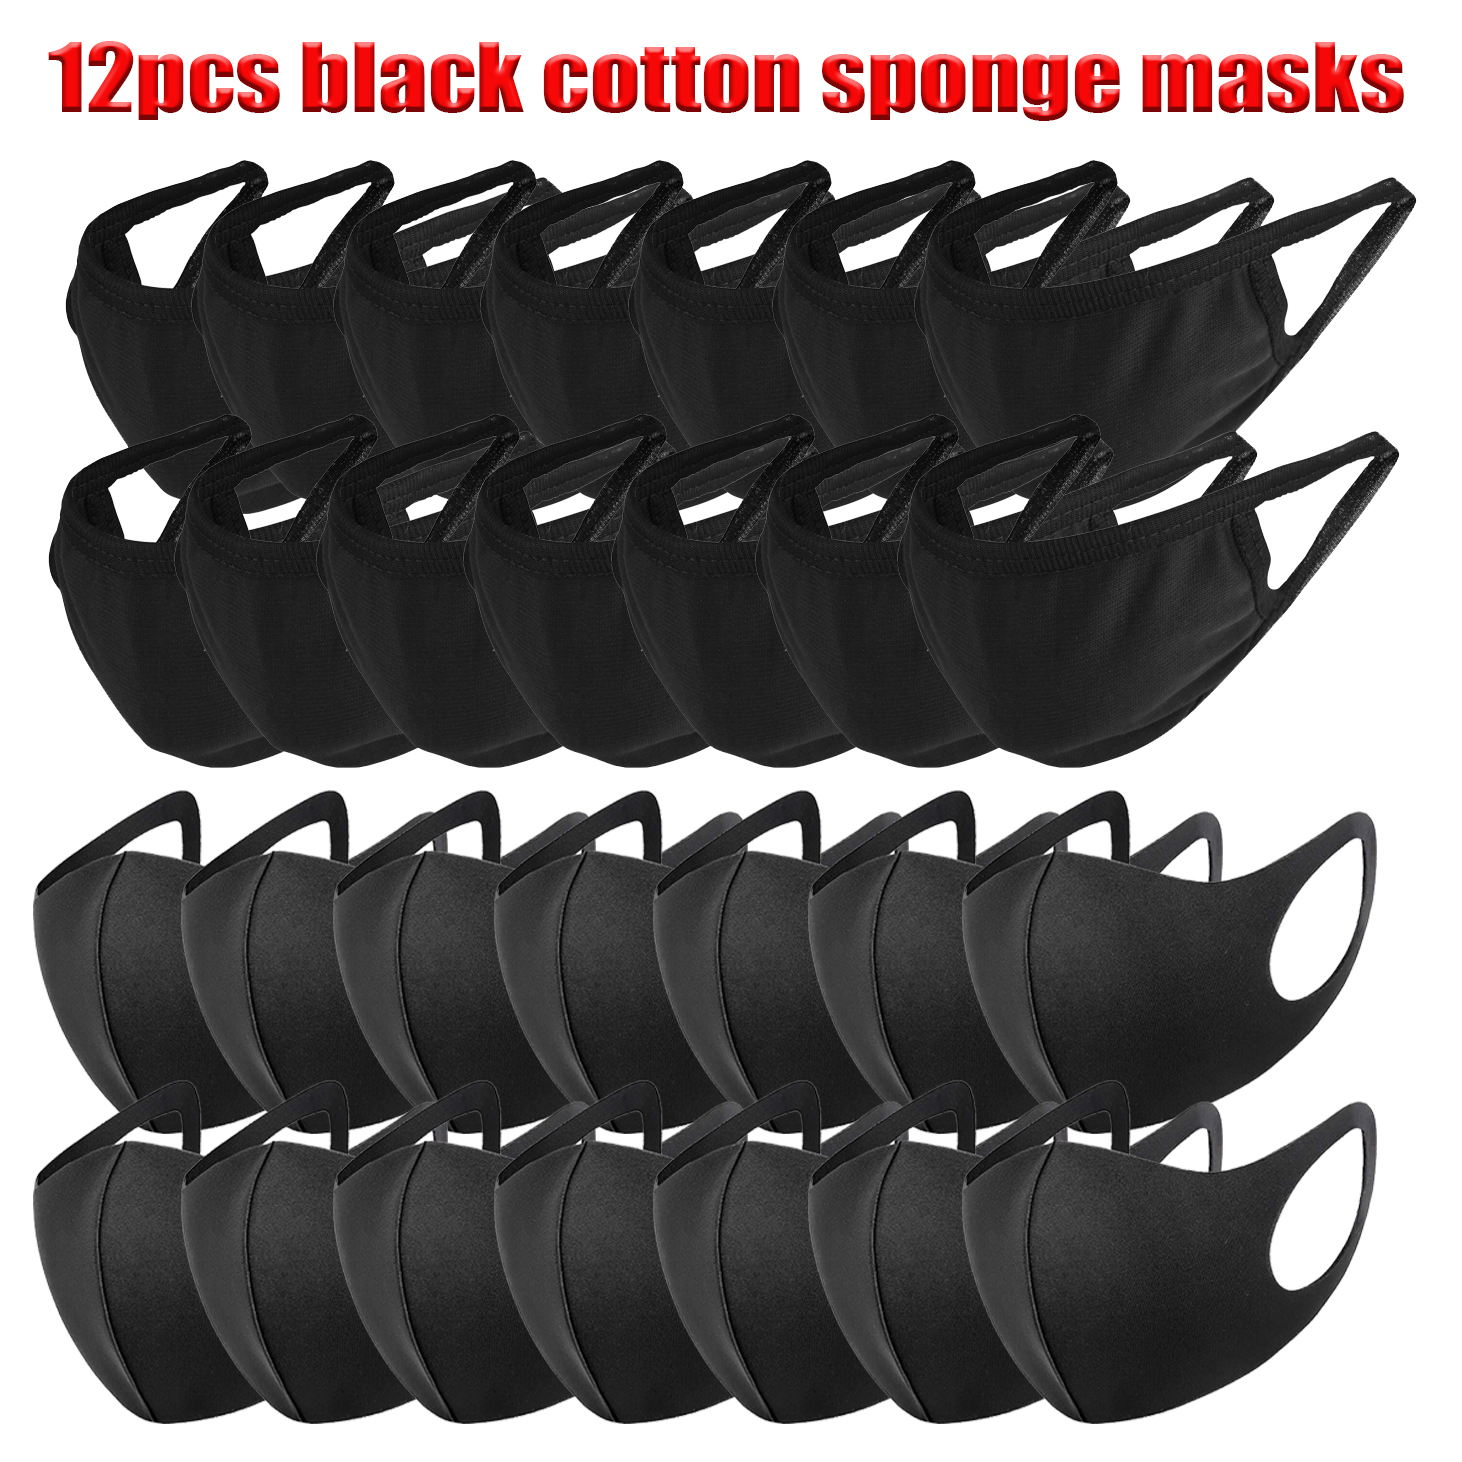 12pcs Anti-Dust Face Mask Respirator 10 Masks Black Cotton Mouth Mask Breathing Muffle Face Cover Outdoor Adult Kids Mas 6/12pcs